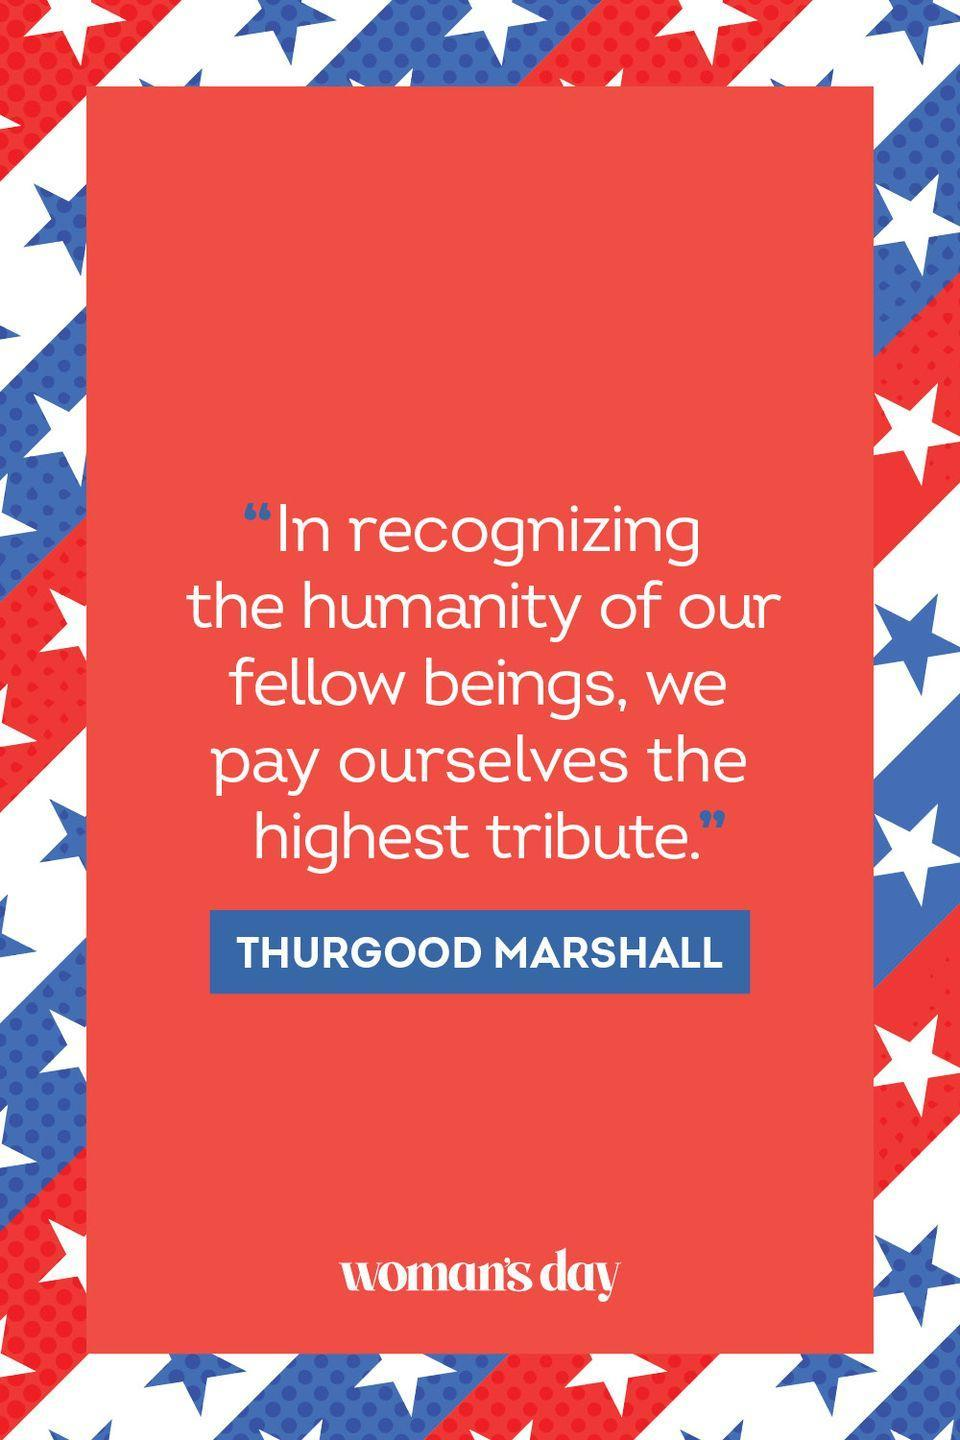 """<p>In recognizing the humanity of our fellow beings, we pay ourselves the highest tribute."""" </p><p>__________________________________________________________</p><p><a href=""""https://subscribe.hearstmags.com/subscribe/womansday/253396?source=wdy_edit_article"""" rel=""""nofollow noopener"""" target=""""_blank"""" data-ylk=""""slk:Subscribe to Woman's Day"""" class=""""link rapid-noclick-resp"""">Subscribe to Woman's Day</a> today and get <strong>73% off your first 12 issues</strong>. And while you're at it, <a href=""""https://subscribe.hearstmags.com/circulation/shared/email/newsletters/signup/wdy-su01.html"""" rel=""""nofollow noopener"""" target=""""_blank"""" data-ylk=""""slk:sign up for our FREE newsletter"""" class=""""link rapid-noclick-resp"""">sign up for our FREE newsletter</a> for even more of the Woman's Day content you want.</p>"""